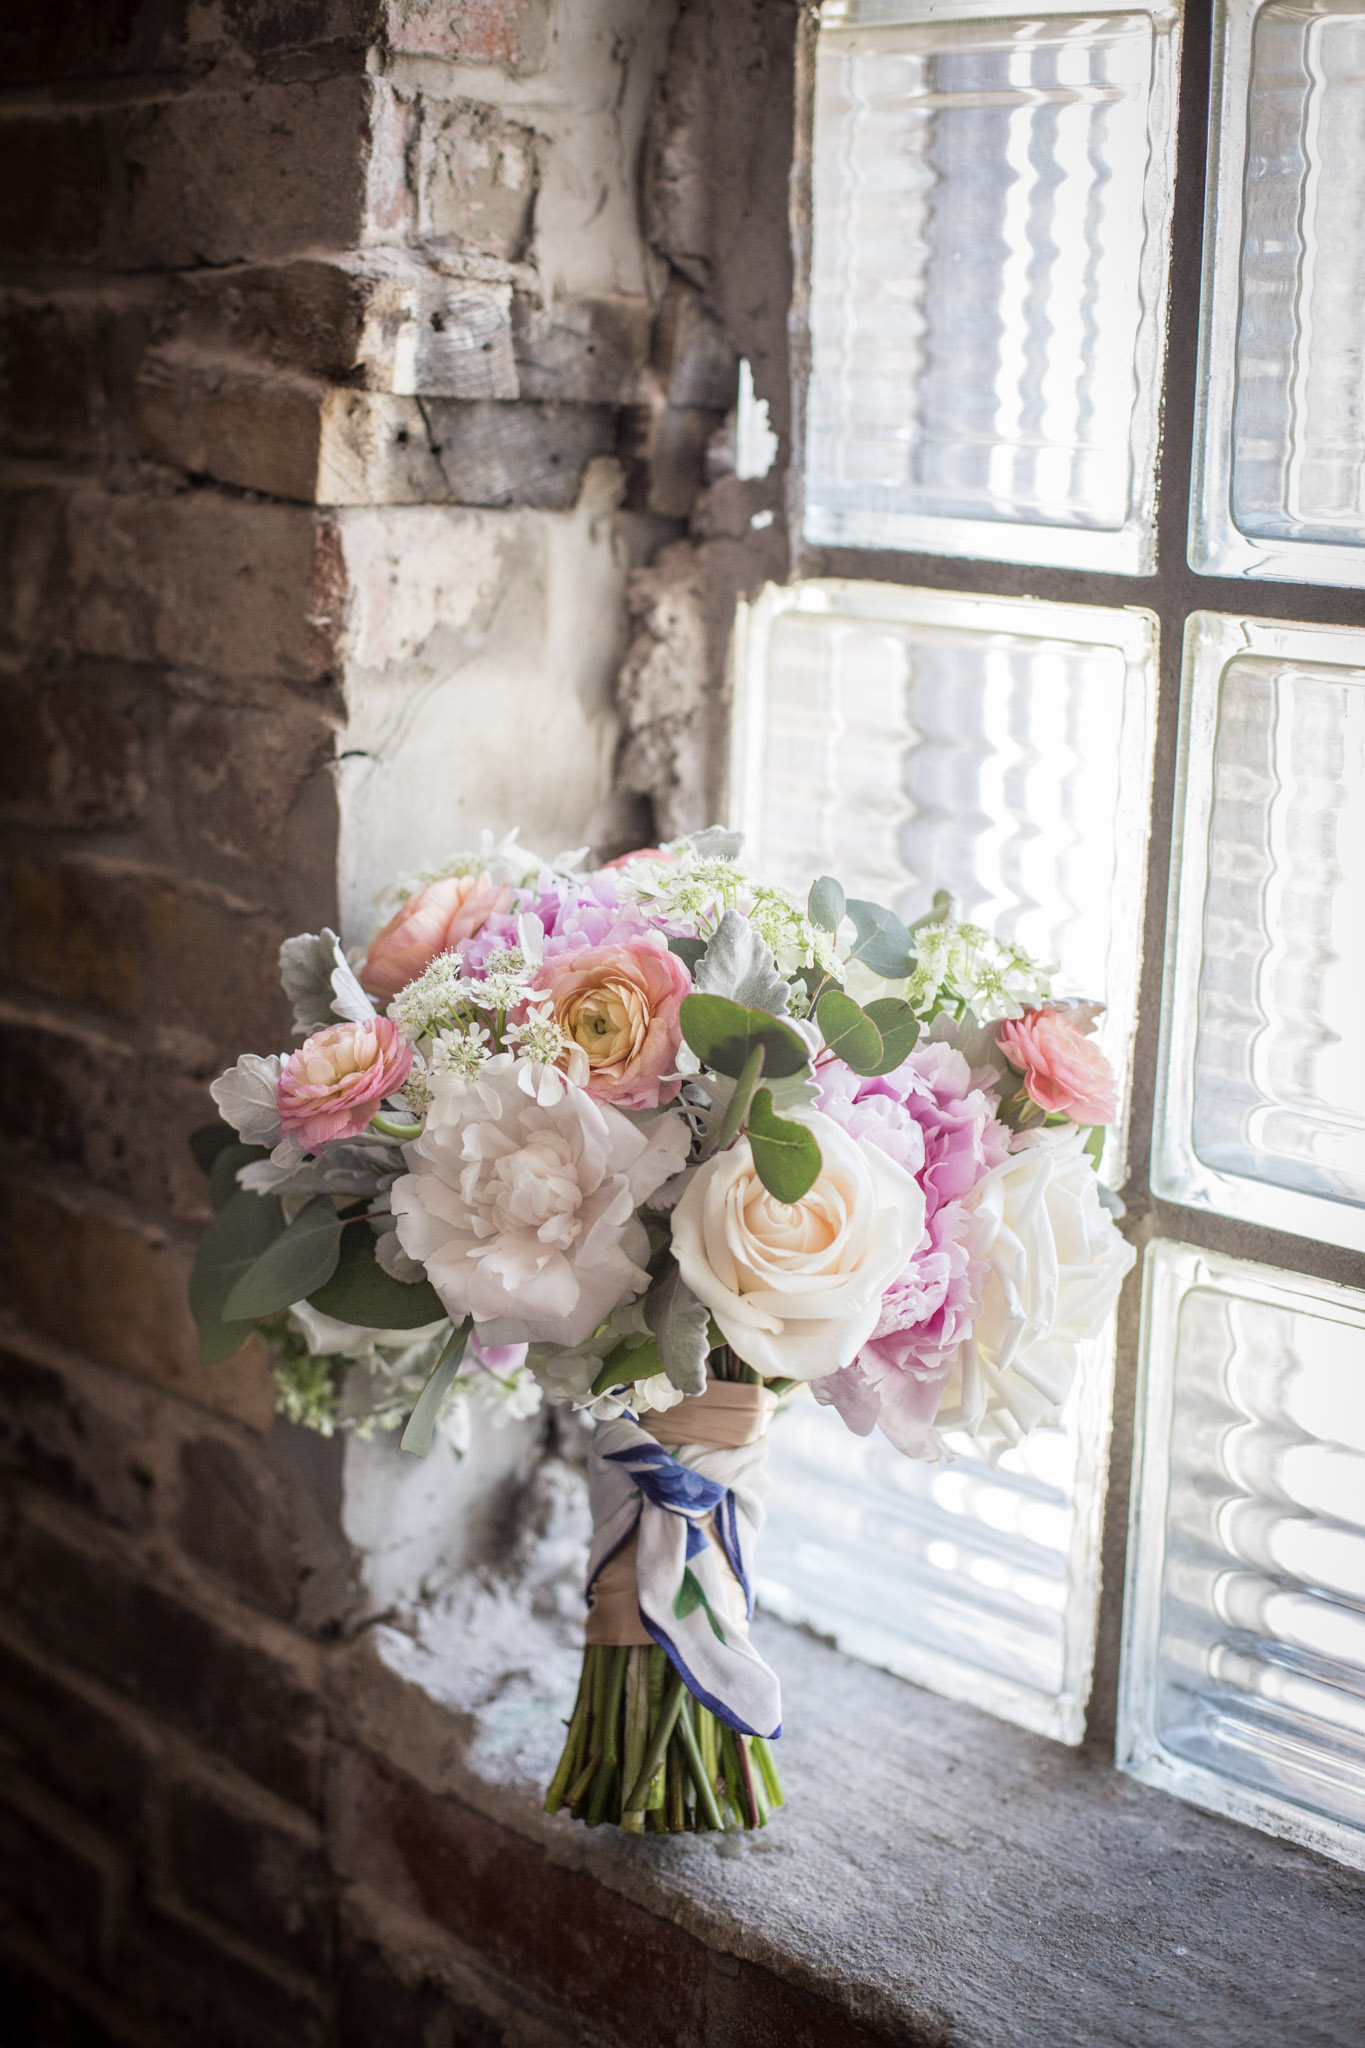 Kansas_City_Small_Wedding_Venue_Elope_Intimate_Ceremony_Budget_Affordable_Summer_Flowers_Jasmine&Reshard_005.jpg